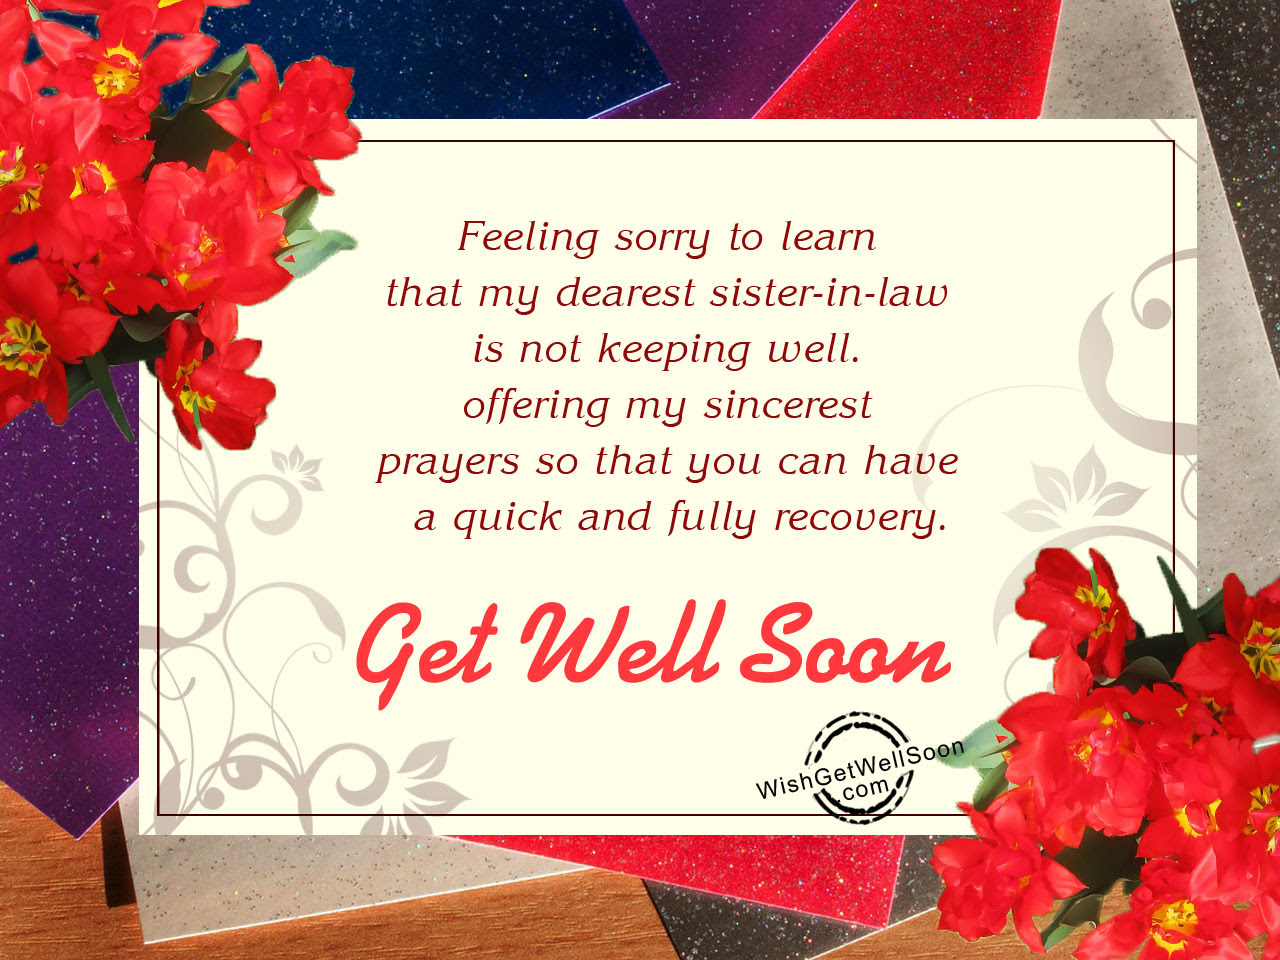 Get Well Soon Wishes For Sister In Law Pictures Images